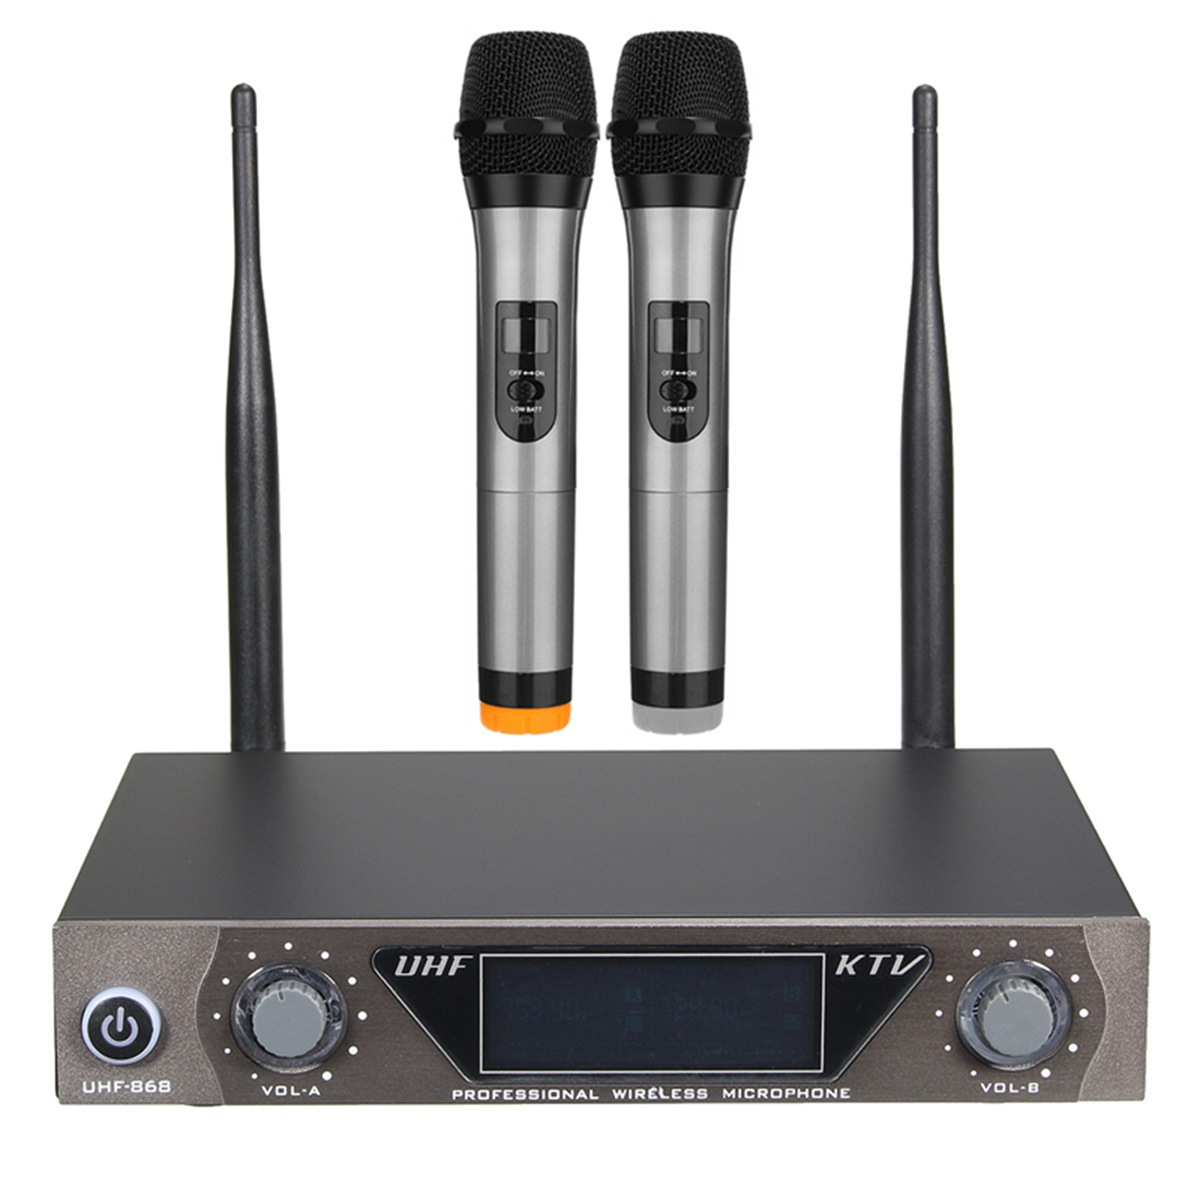 LEORY UHF Karaoke Wireless Microphone System With 2 Handheld Mic Dual Channel UHF Transmitter Microphone Systerm For Karaoke boya by whm8 professional 48 uhf microphone dual channels wireless handheld mic system lcd display for karaoke party liveshow